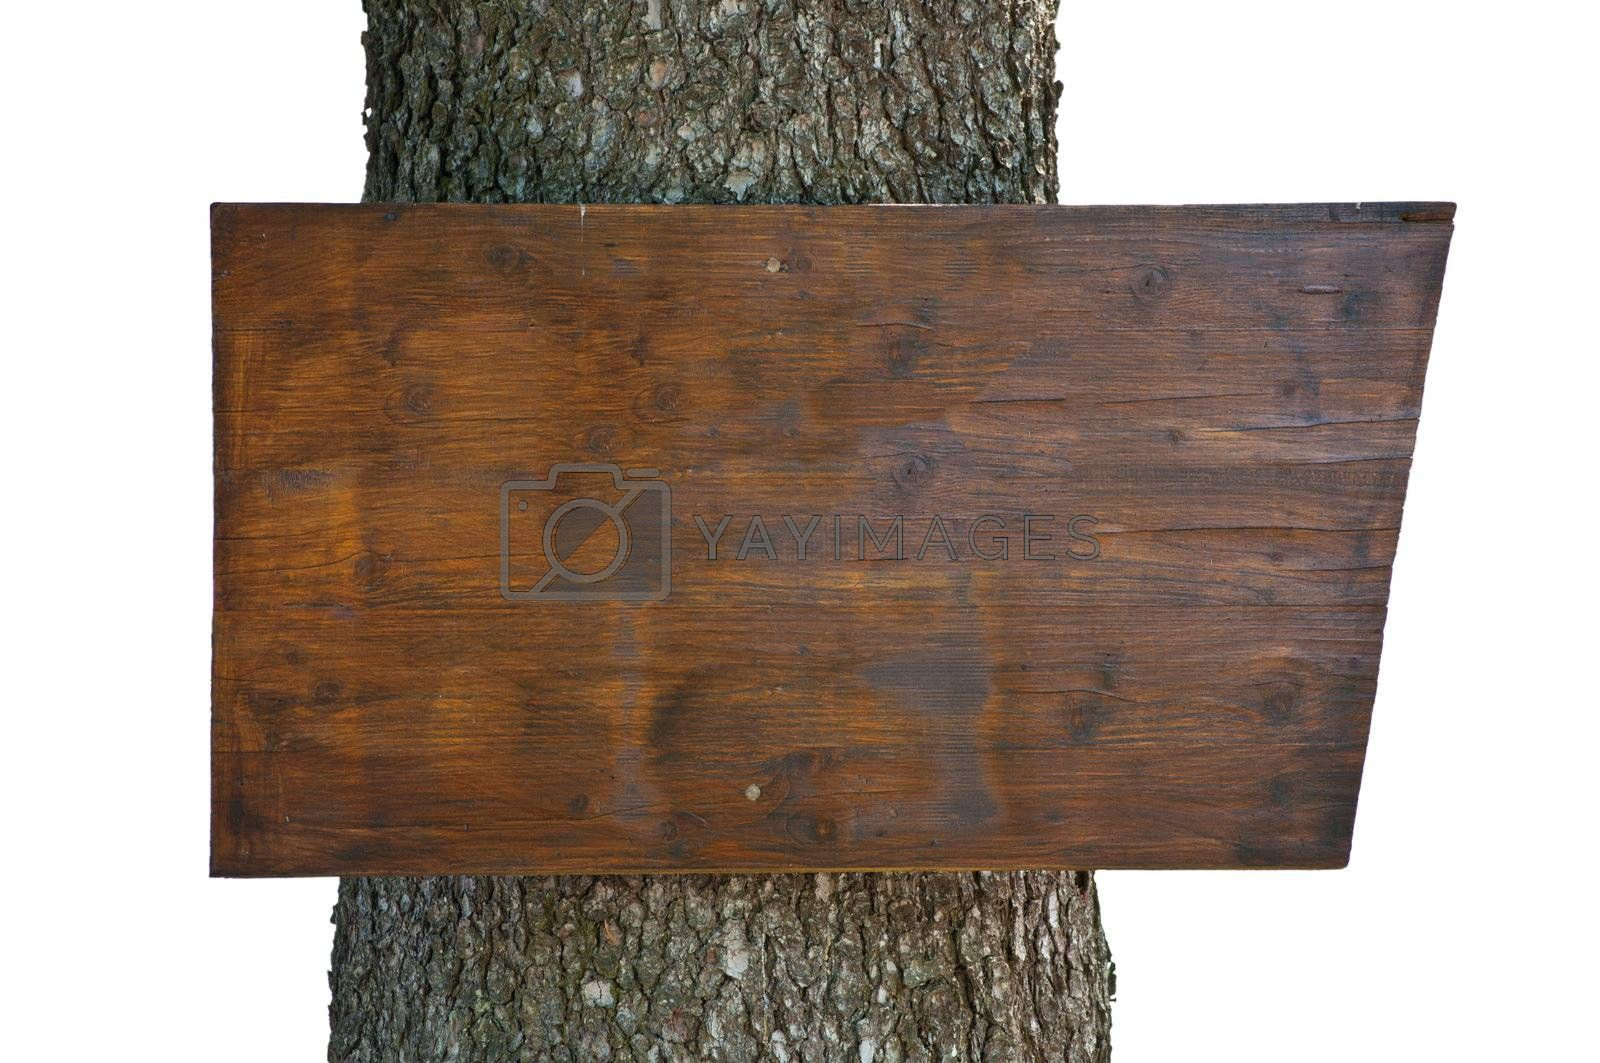 Empty wooden plank nailed to tree trunk on white background